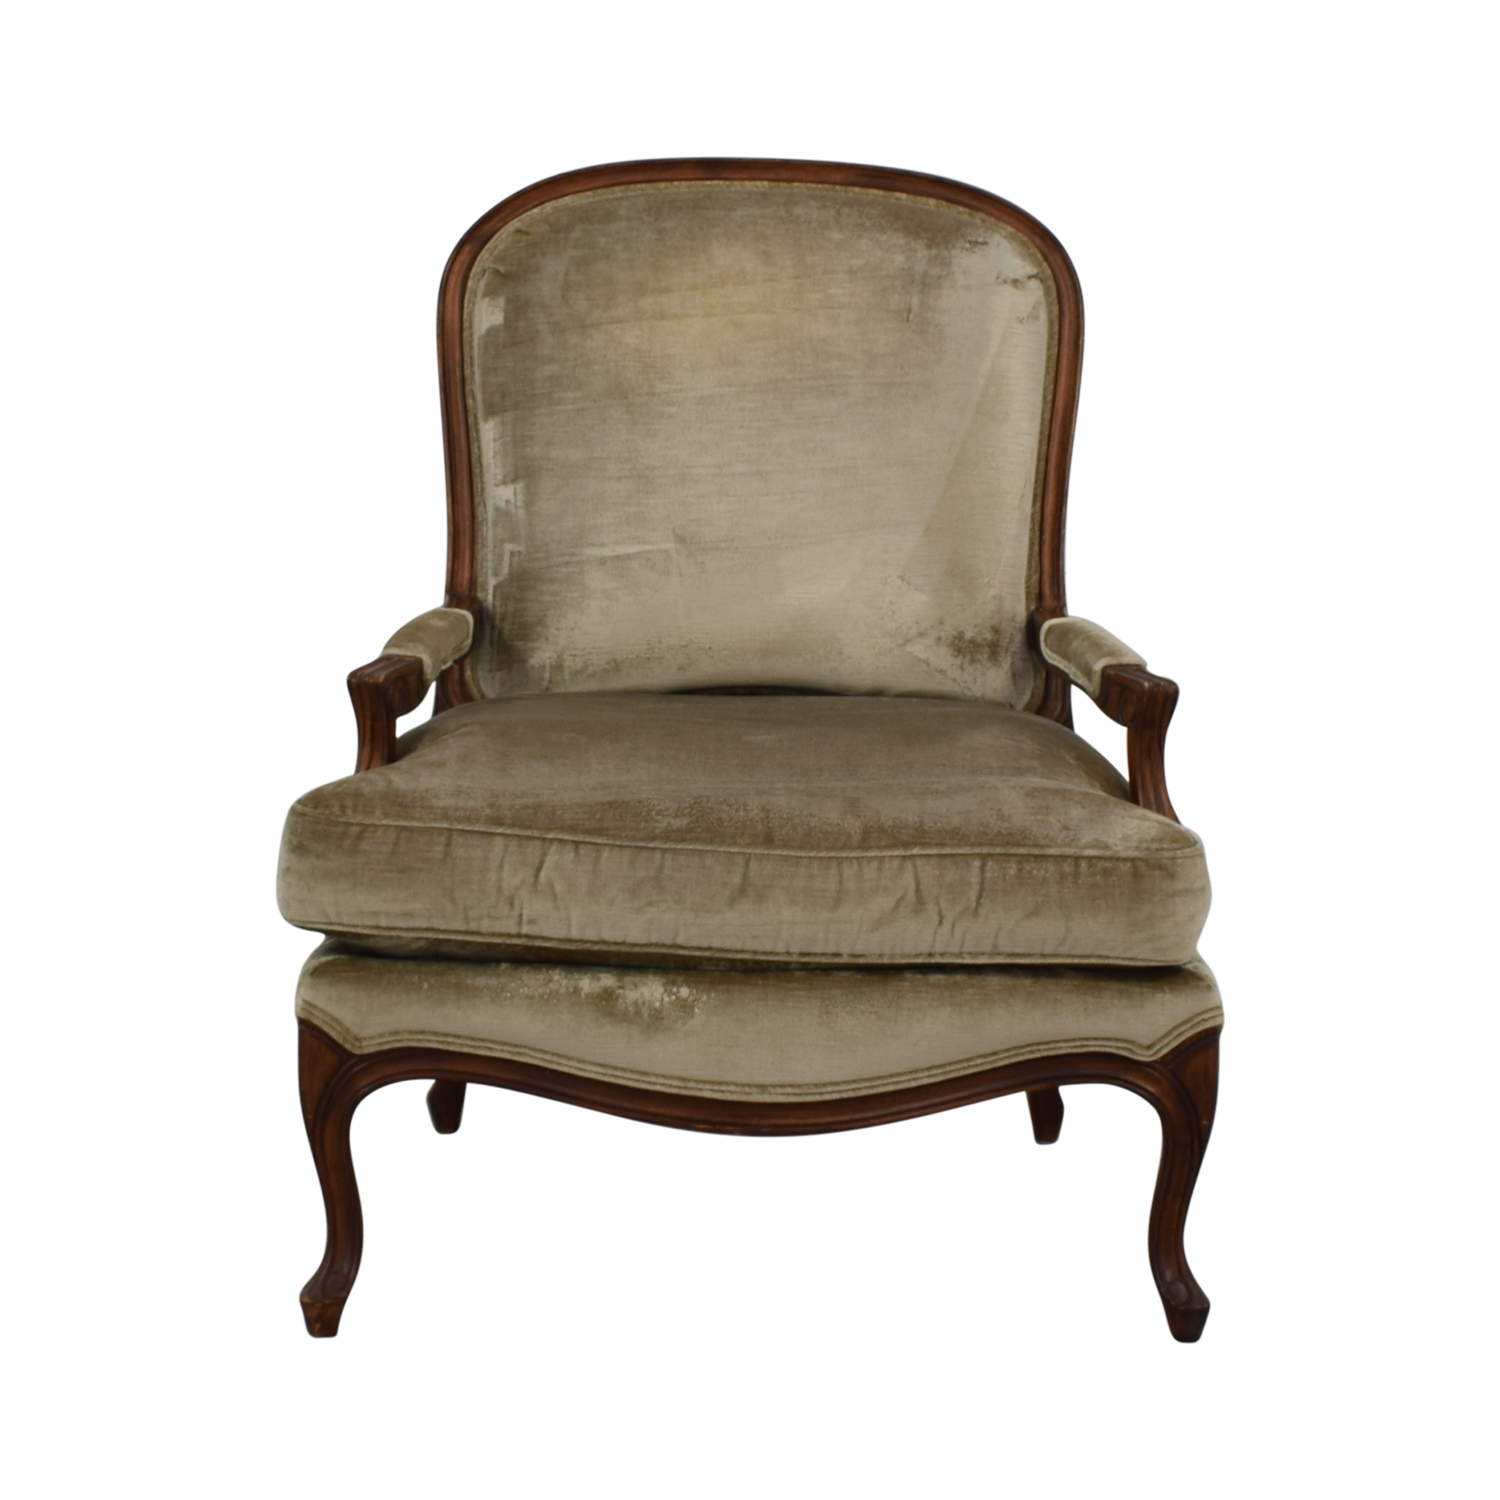 Drexel Heritage Drexel Heritage Country French Accent Chair discount